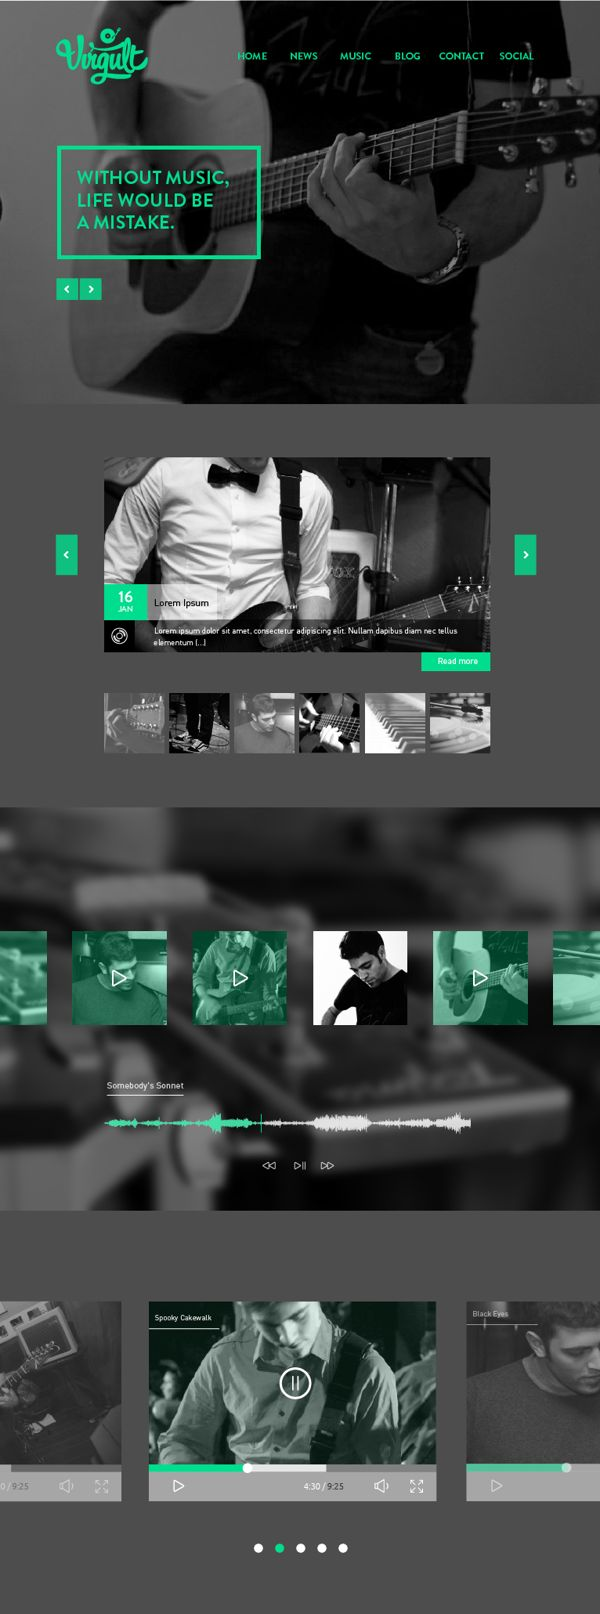 Unique Web Design, Virgult #WebDesign #Design (http://www.pinterest.com/aldenchong/) ________________________ Great choice of color. The B & W images work well with the cool green.